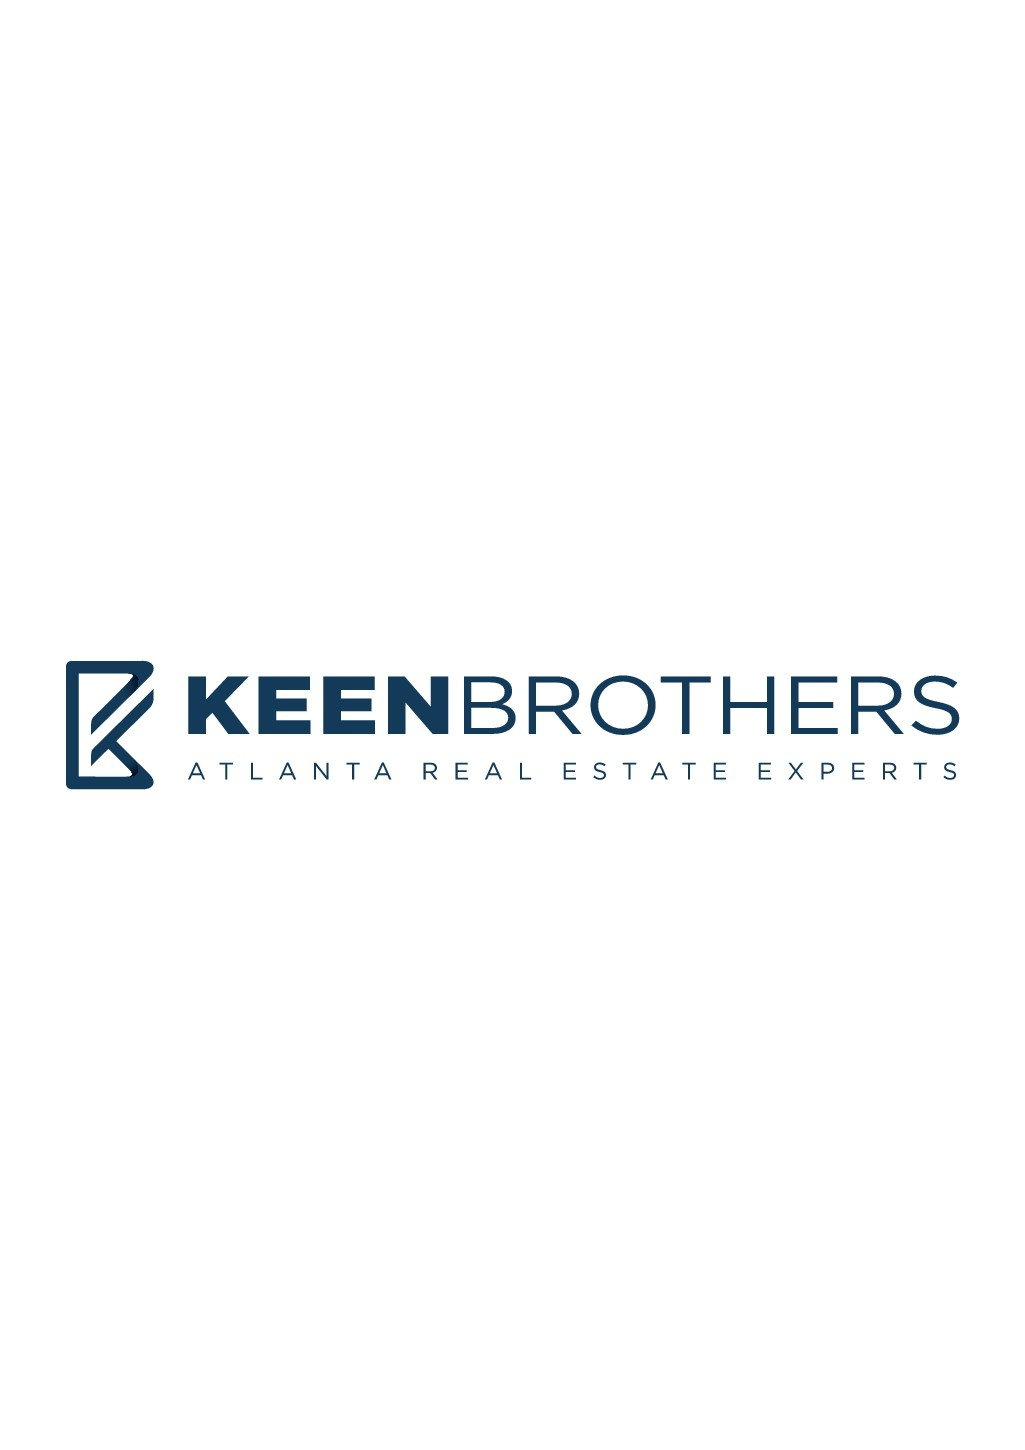 The Keen Brothers need a new look